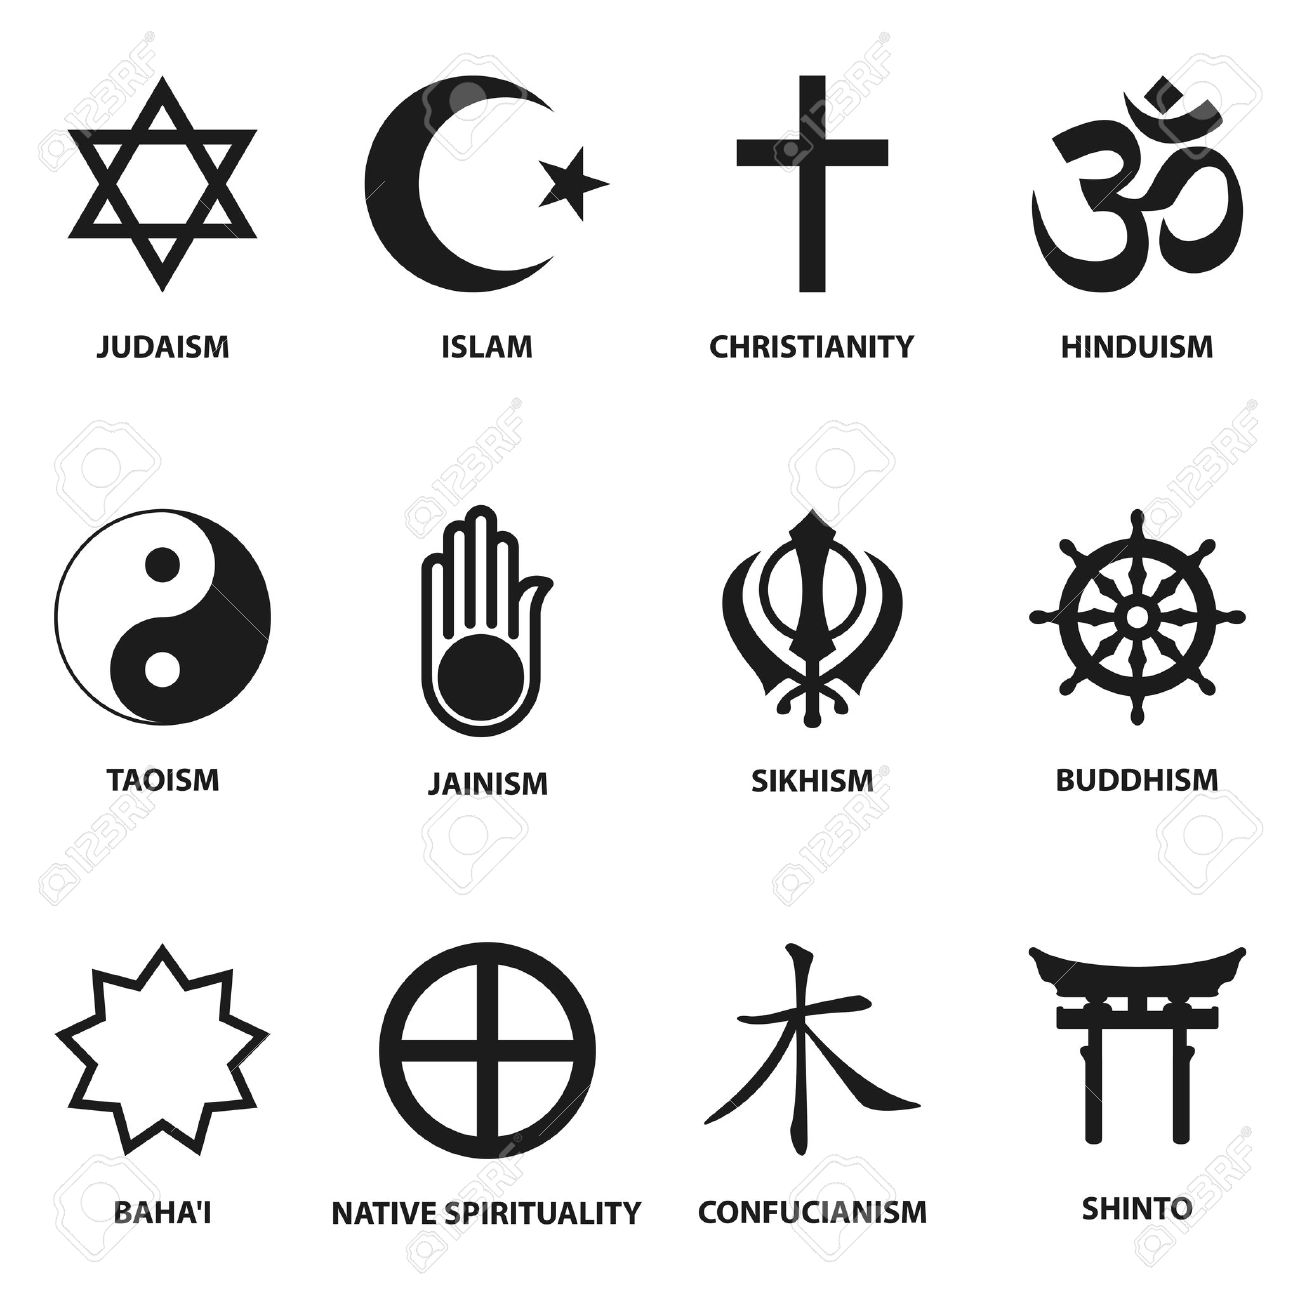 10795 judaism stock vector illustration and royalty free judaism world religious sign and symbols collection isolated on white background vector illustration biocorpaavc Gallery